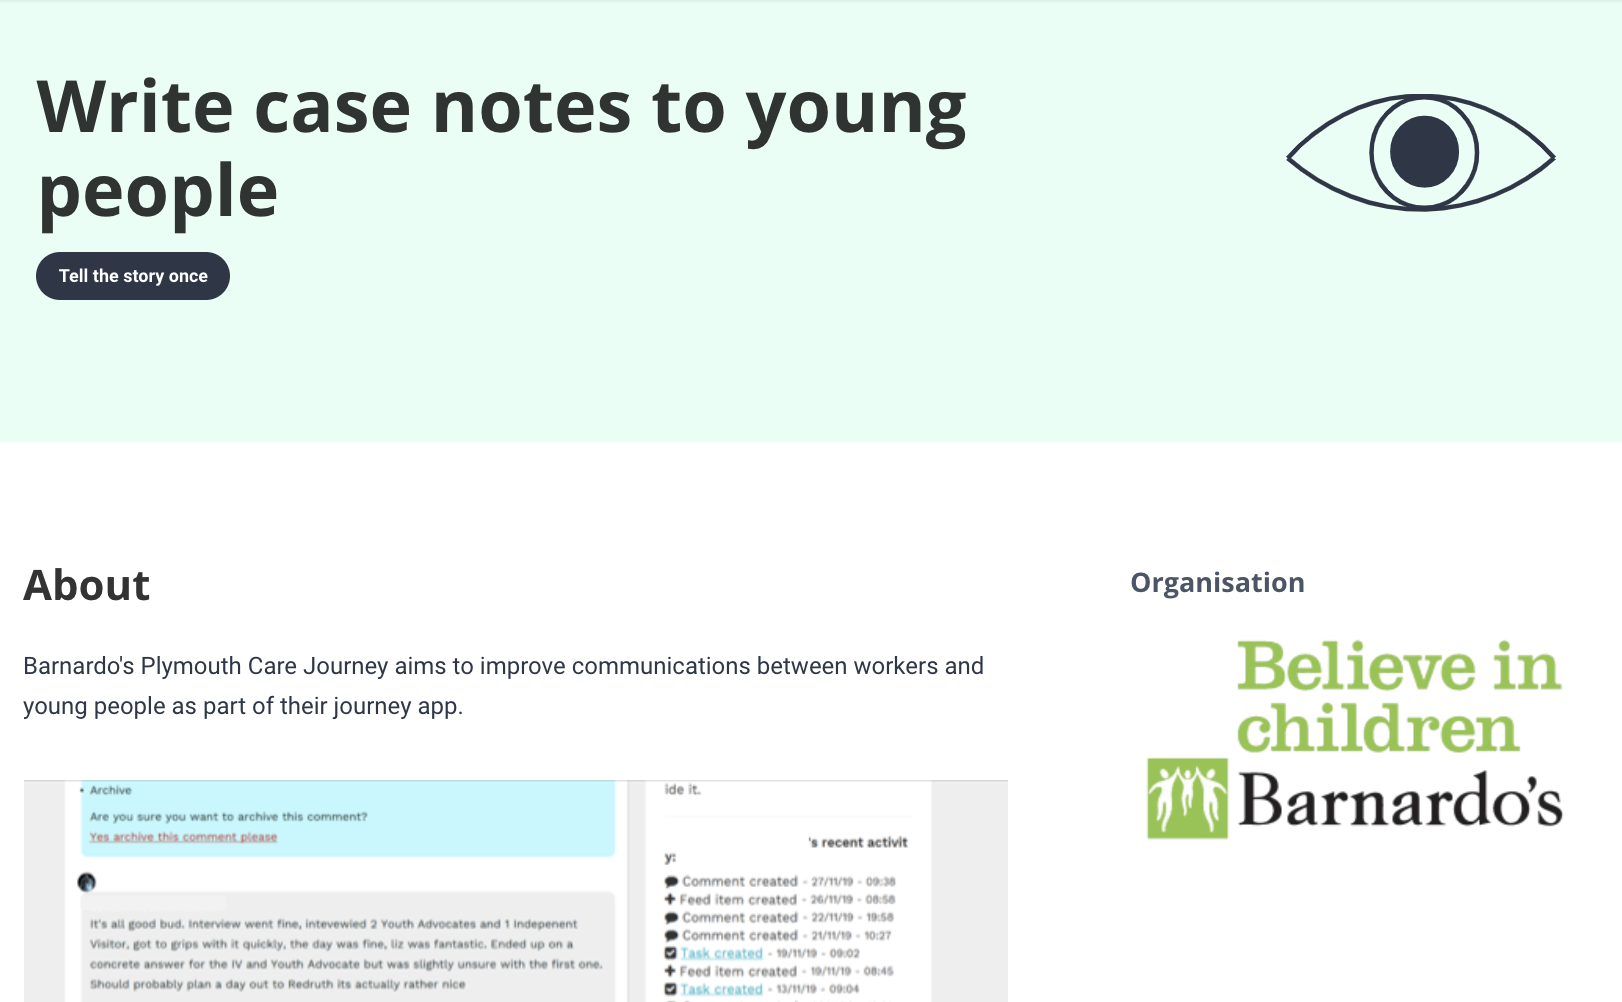 A screengrab showing an example from the Design Patterns for Mental Health library: This one is about writing case notes from Barnardo's work with young people